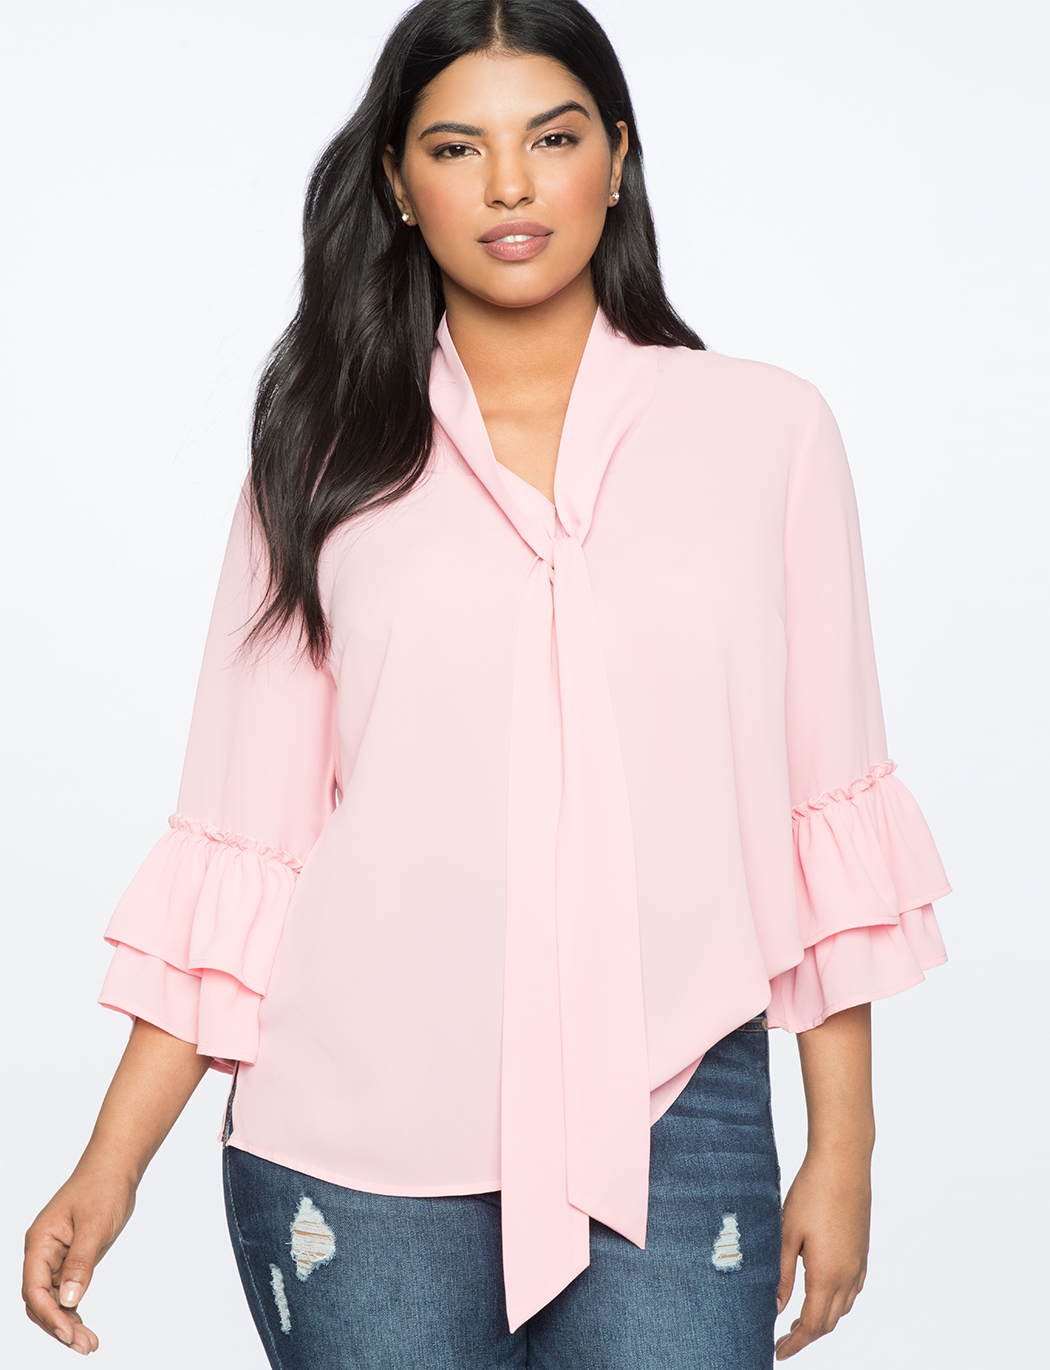 Ruffle Flounce Sleeve Top with Tie Neck